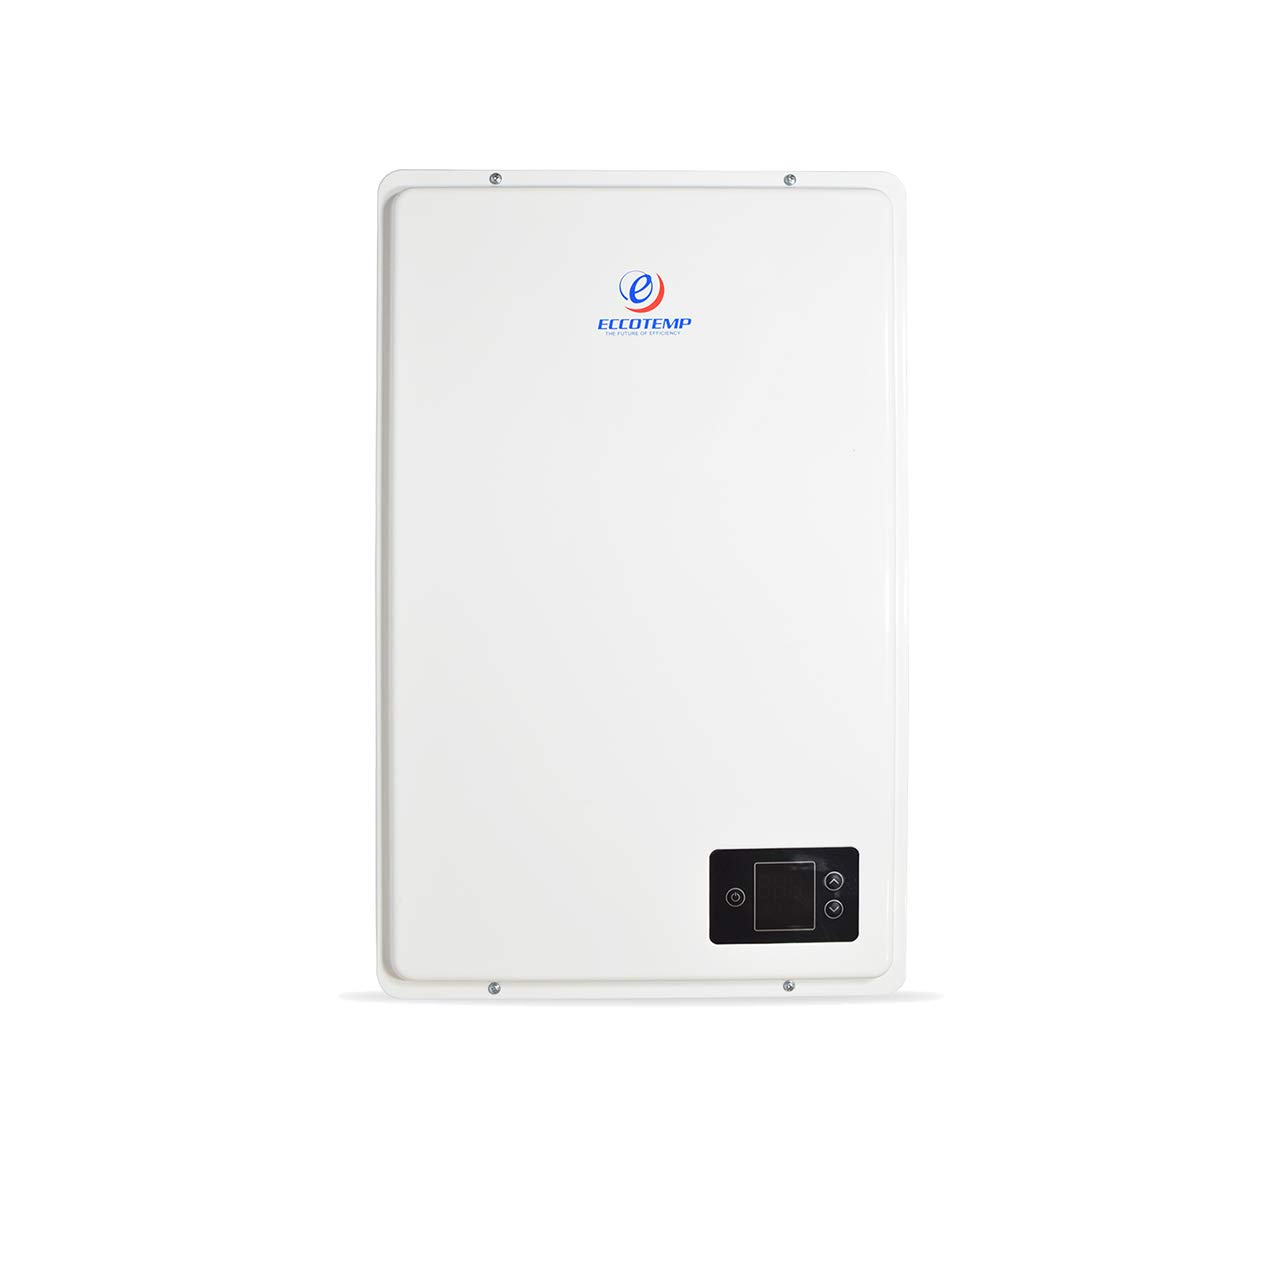 20L Series Gas Tankless Water Heater (Indoor, Natural Gas) by Eccotemp (Image #1)